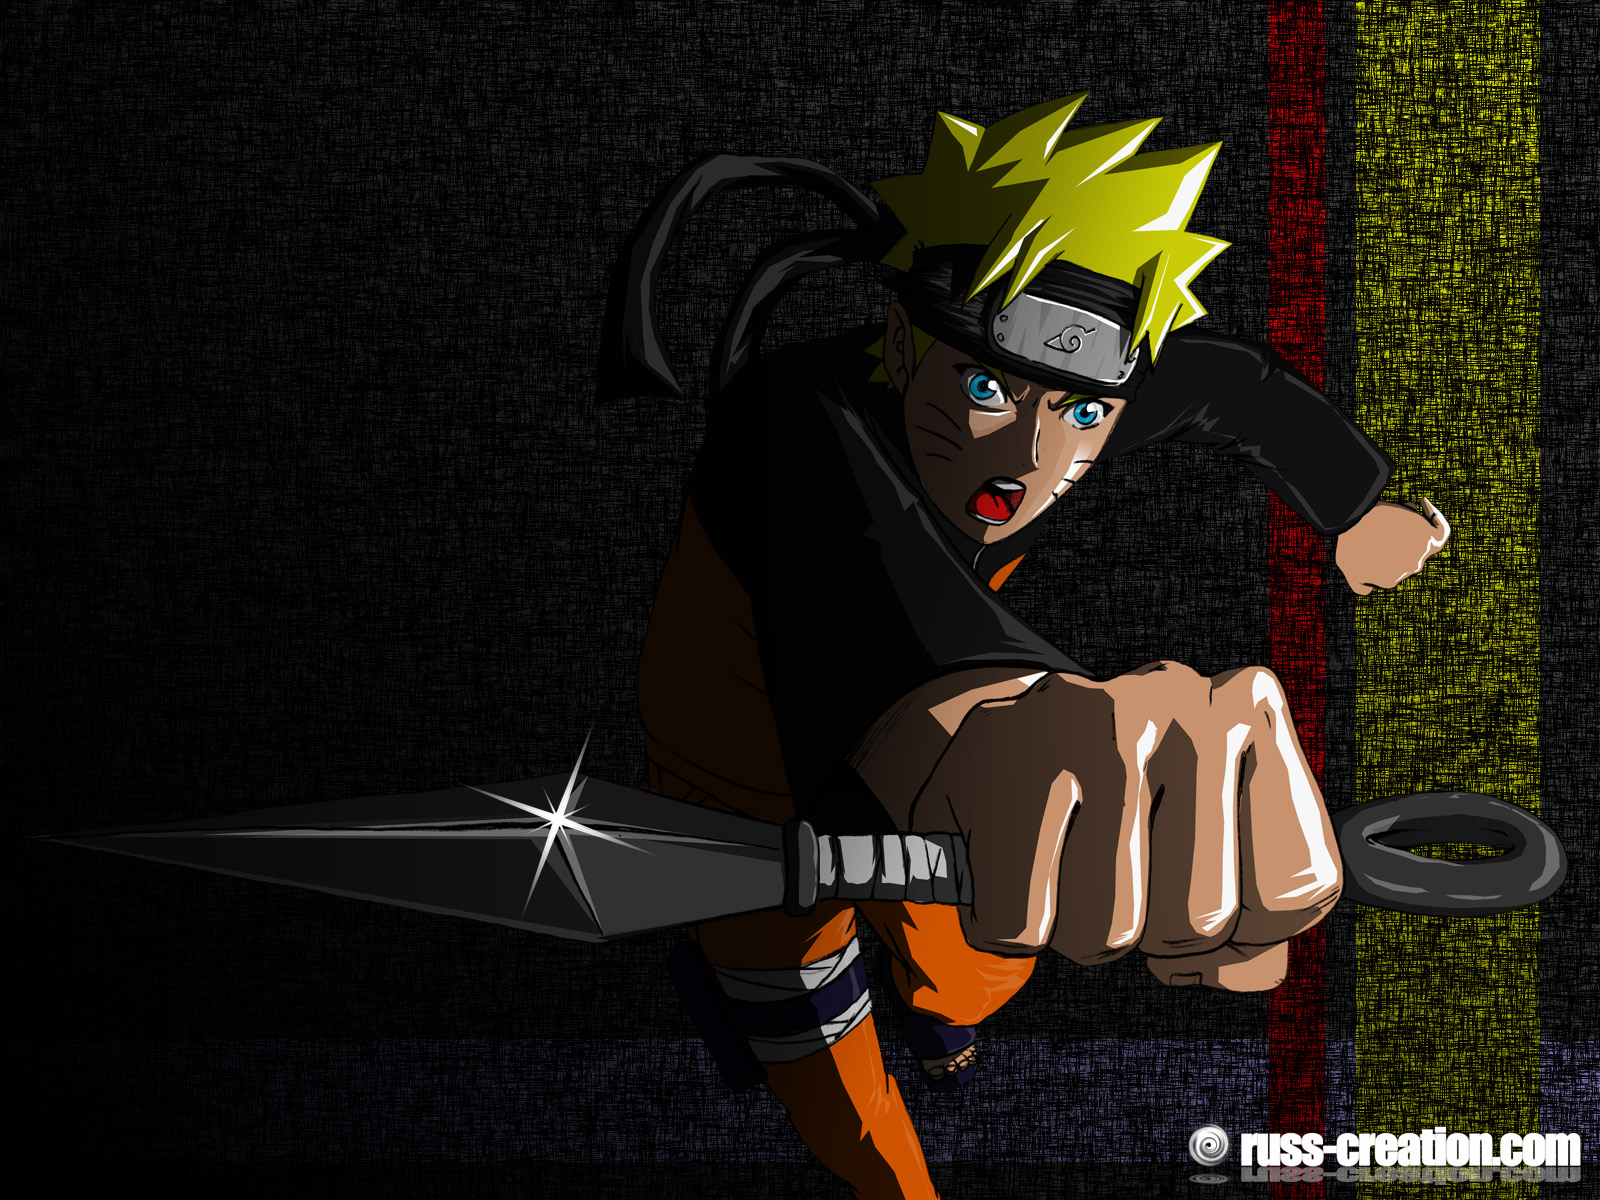 Wallpapers de Naruto Shippuden One Piece Bleach 1600x1200